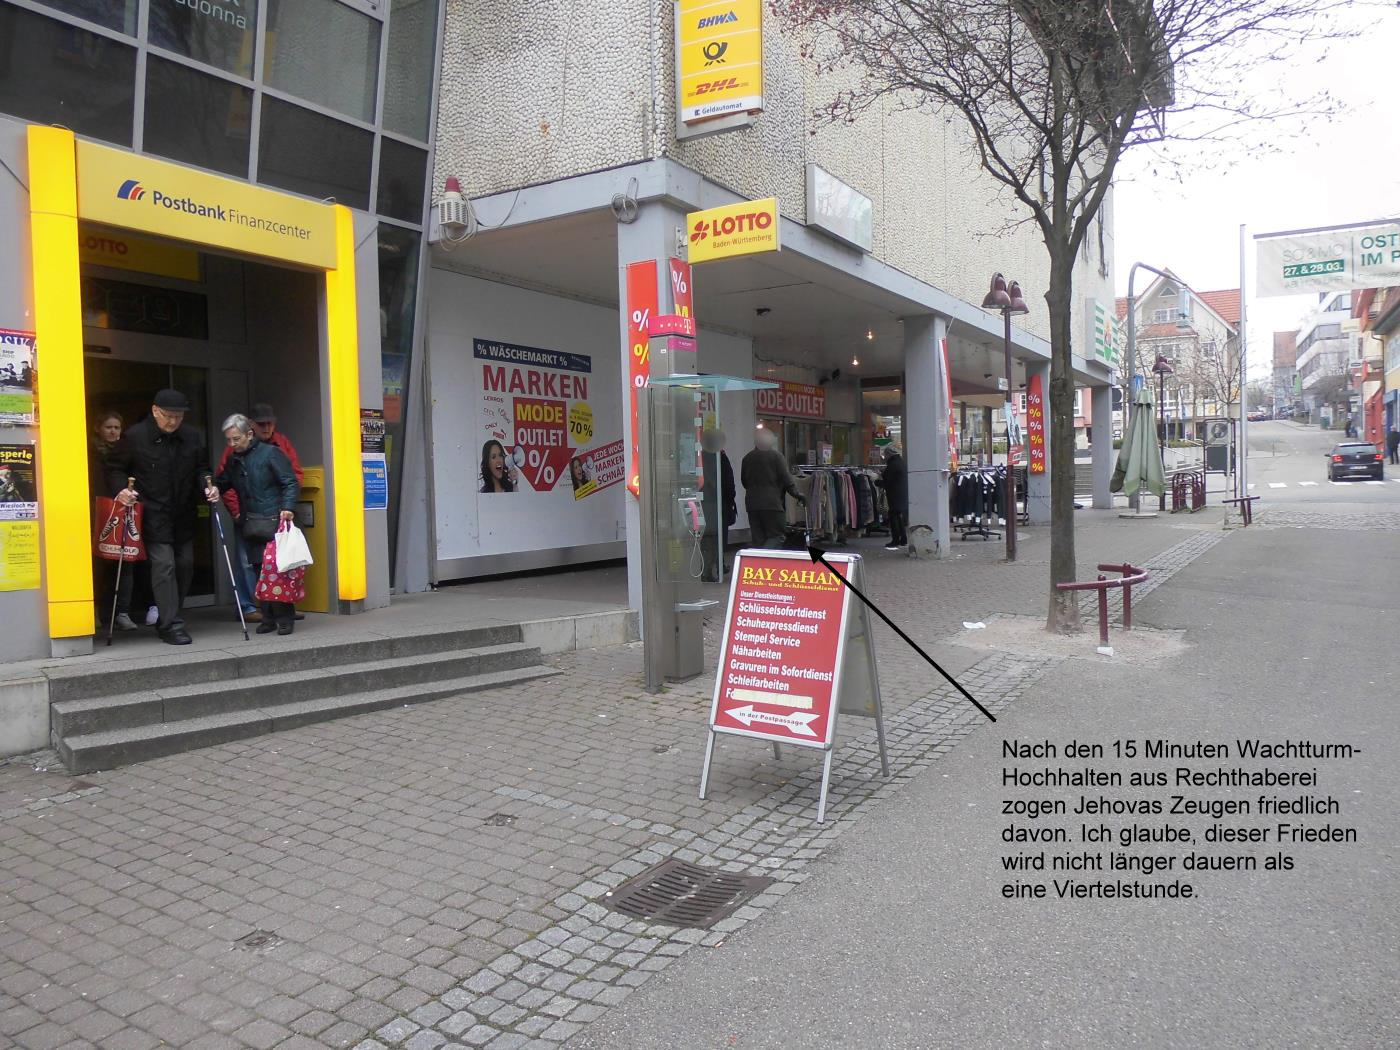 Jehovah's Witnesses in Wiesloch recognize their embarrassment